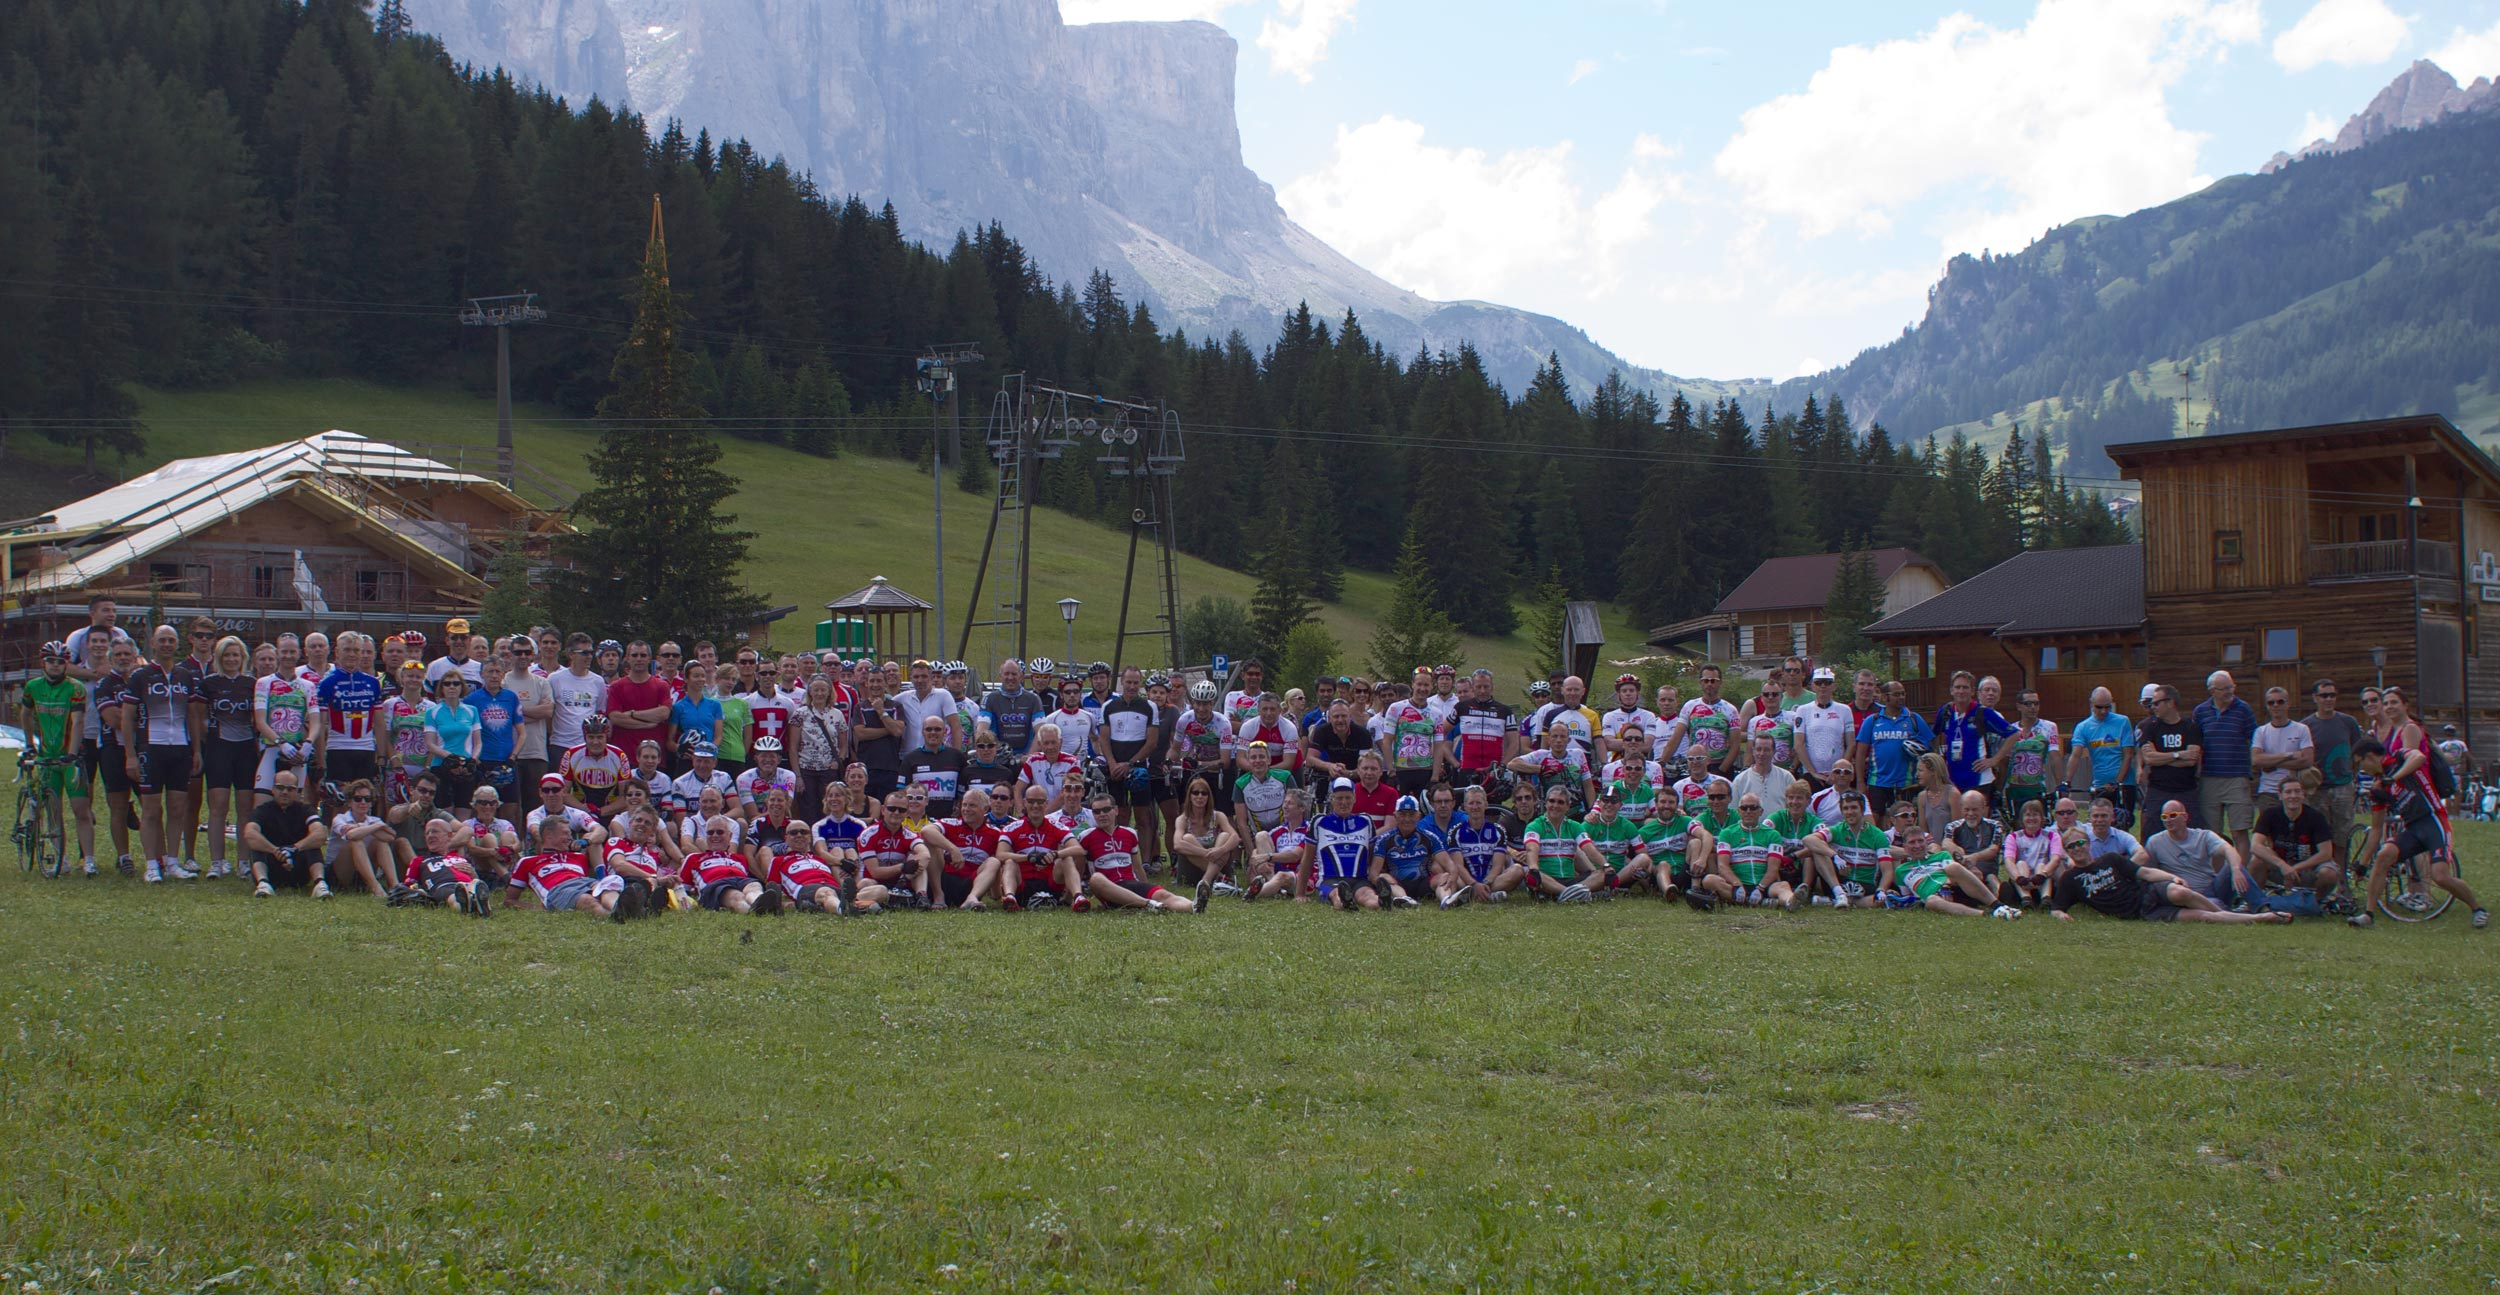 Cycling Weekly group, Maratona dles Dolomites 2011